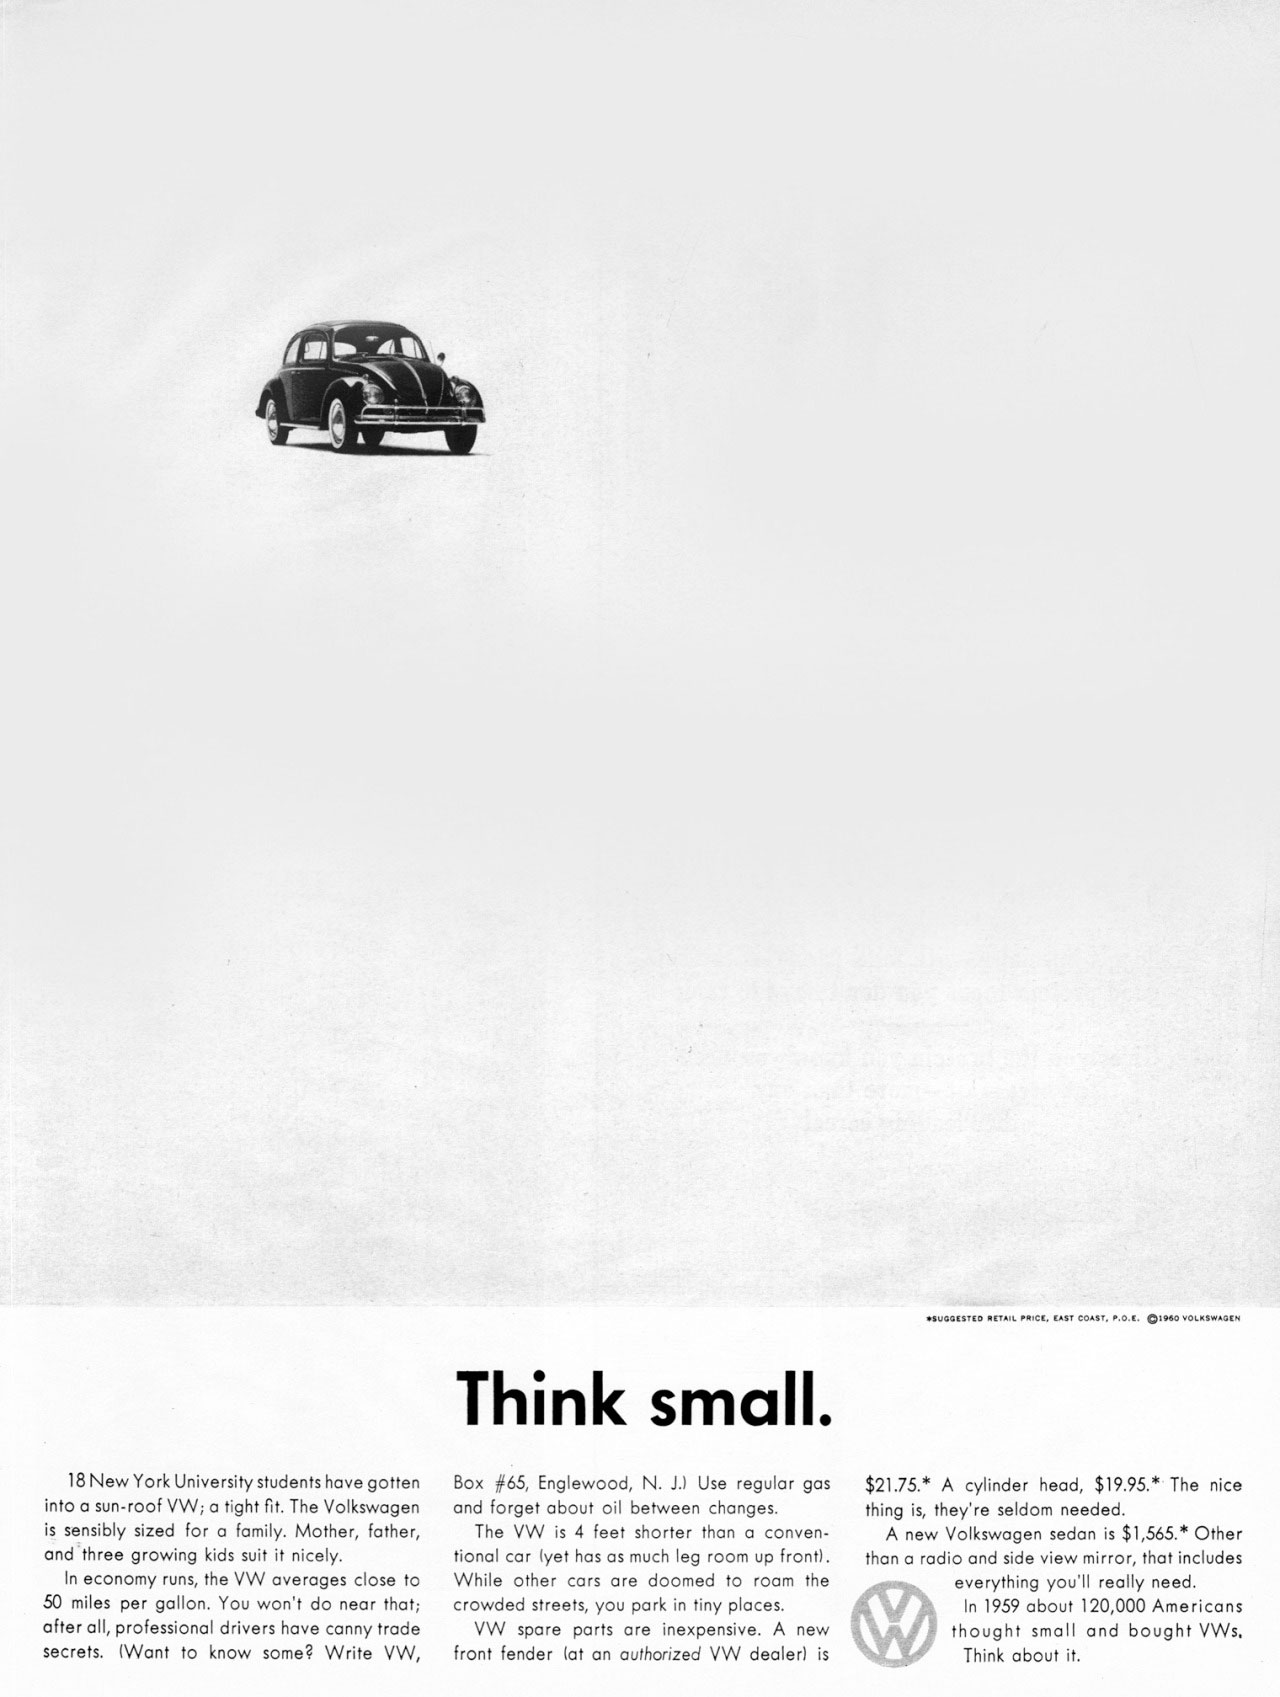 The Volkswagen Beetle. Think small. 18 New York University students have gotten into a sun-roof VW; a tight fit. The Volkswagen is sensibly sized for o family. Mother, father, and three growing kids suit it nicely. In economy runs, the VW averages close to 50 miles per gallon. You won't do near that; after all, professional drivers have canny trade secrets. (Want to know some? Write VW,  Think small.  Box #65, Englewood, N. J.) Use regular gas and forget about oil between changes. The VW is 4 feet shorter than a conven-tional car lyet has as much leg room up front). While other cars are doomed to roam the crowded streets, you park in tiny places. VW spare parts are inexpensive. A new front fender lat an authorized VW dealer) is  .umeutte au. P... u.svec.v.o.o.t.  $21.75.* A cylinder head, $19.95.* The nice thing is, they're seldom needed. A new Volkswagen sedan is $1,565.* Other than a radio and side view mirror, that includes everything you'll really need. In 1959 about 120,000 Americans thought small and bought VWs, Think about it.